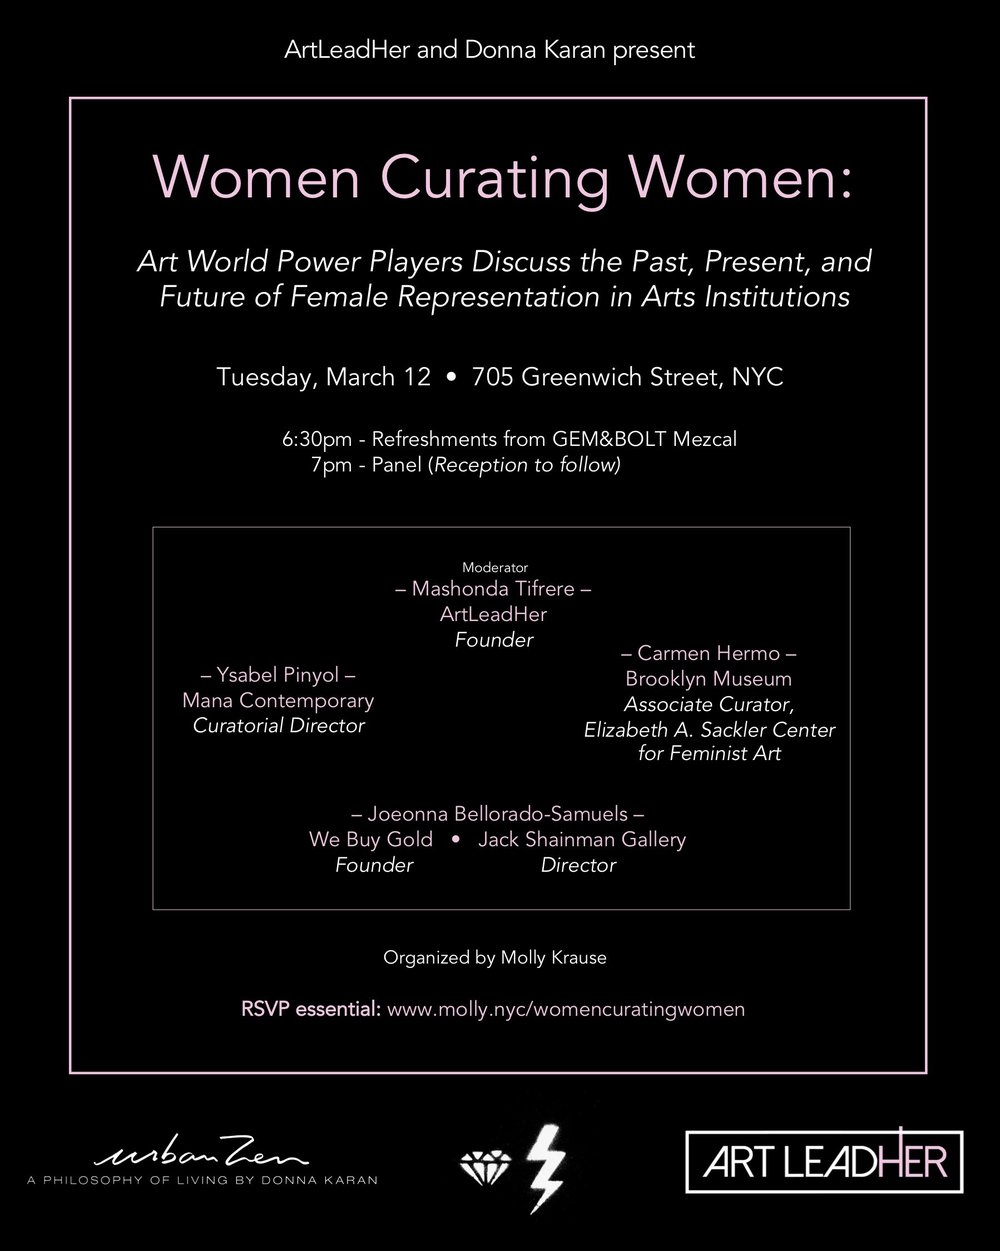 women curating women invite.jpg